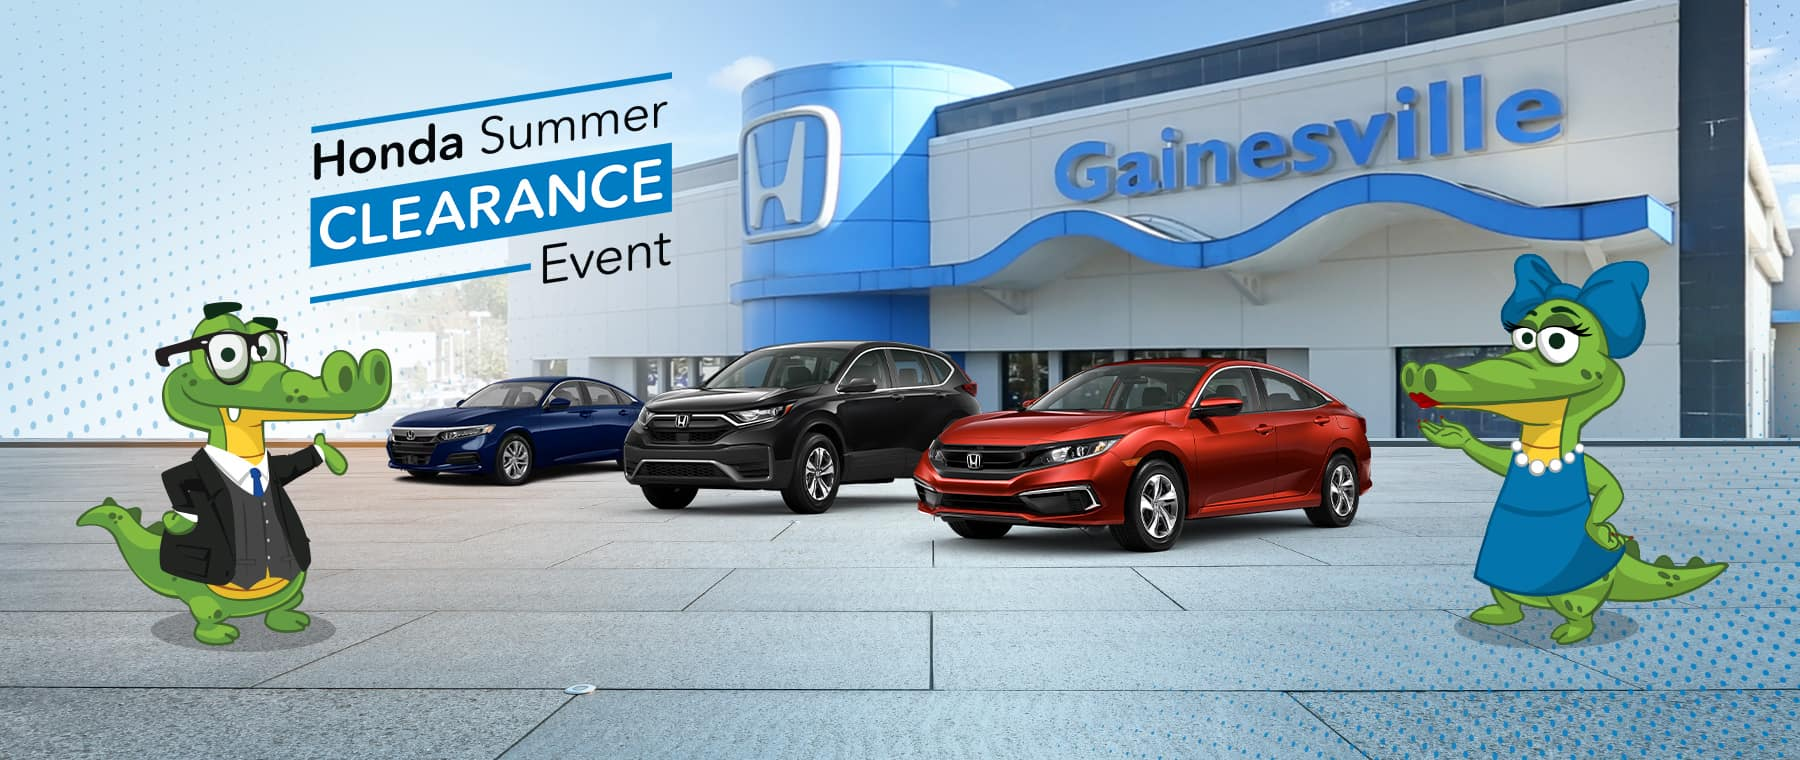 The Honda Summer Clearance Event At Honda of Gainesville